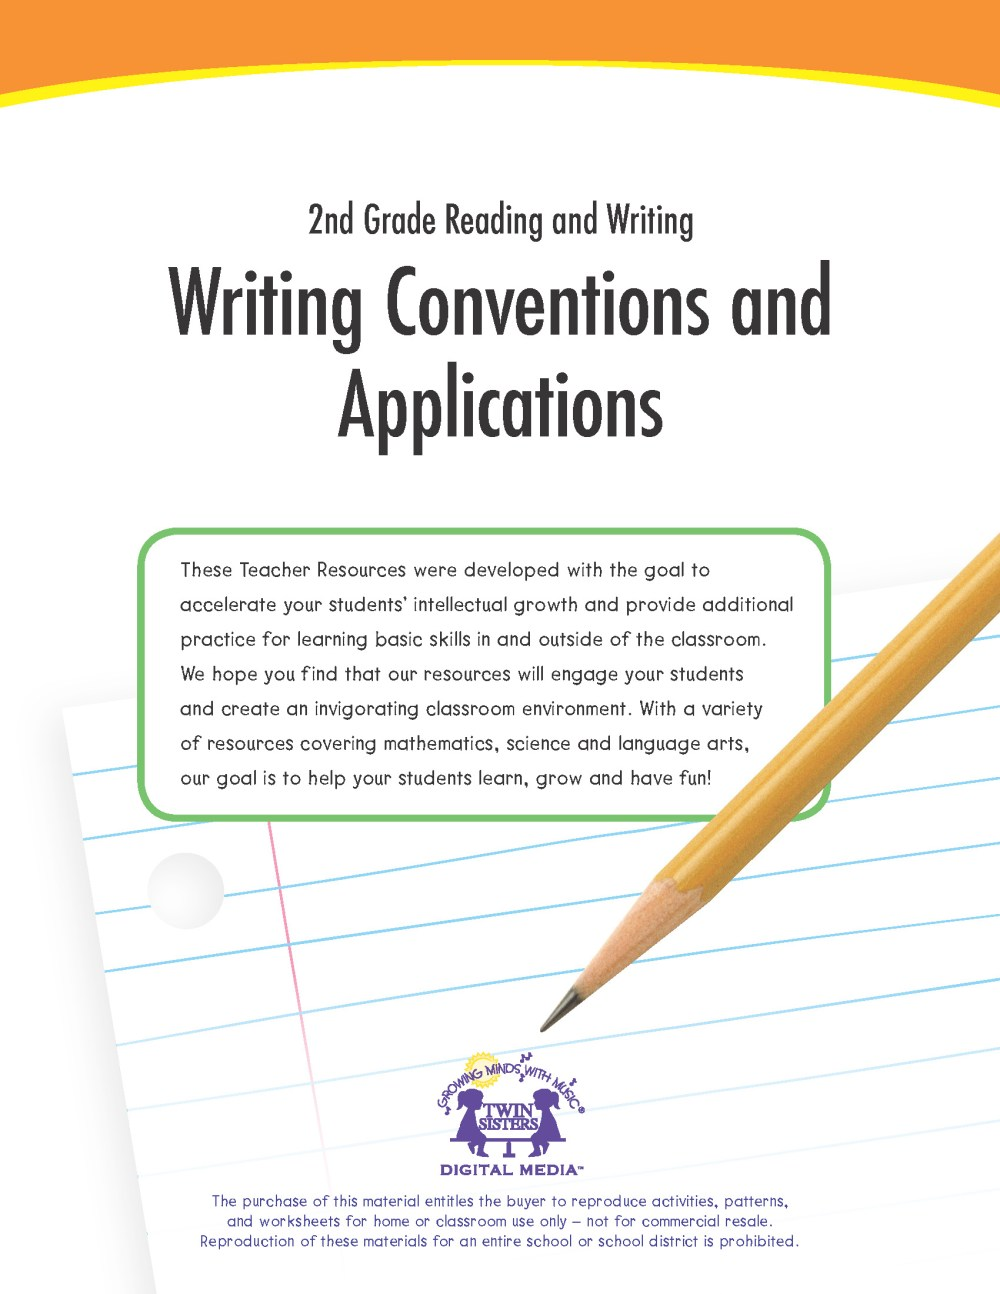 medium resolution of 2nd Grade Reading and Writing: Writing Conventions and Applications   Twin  Sisters